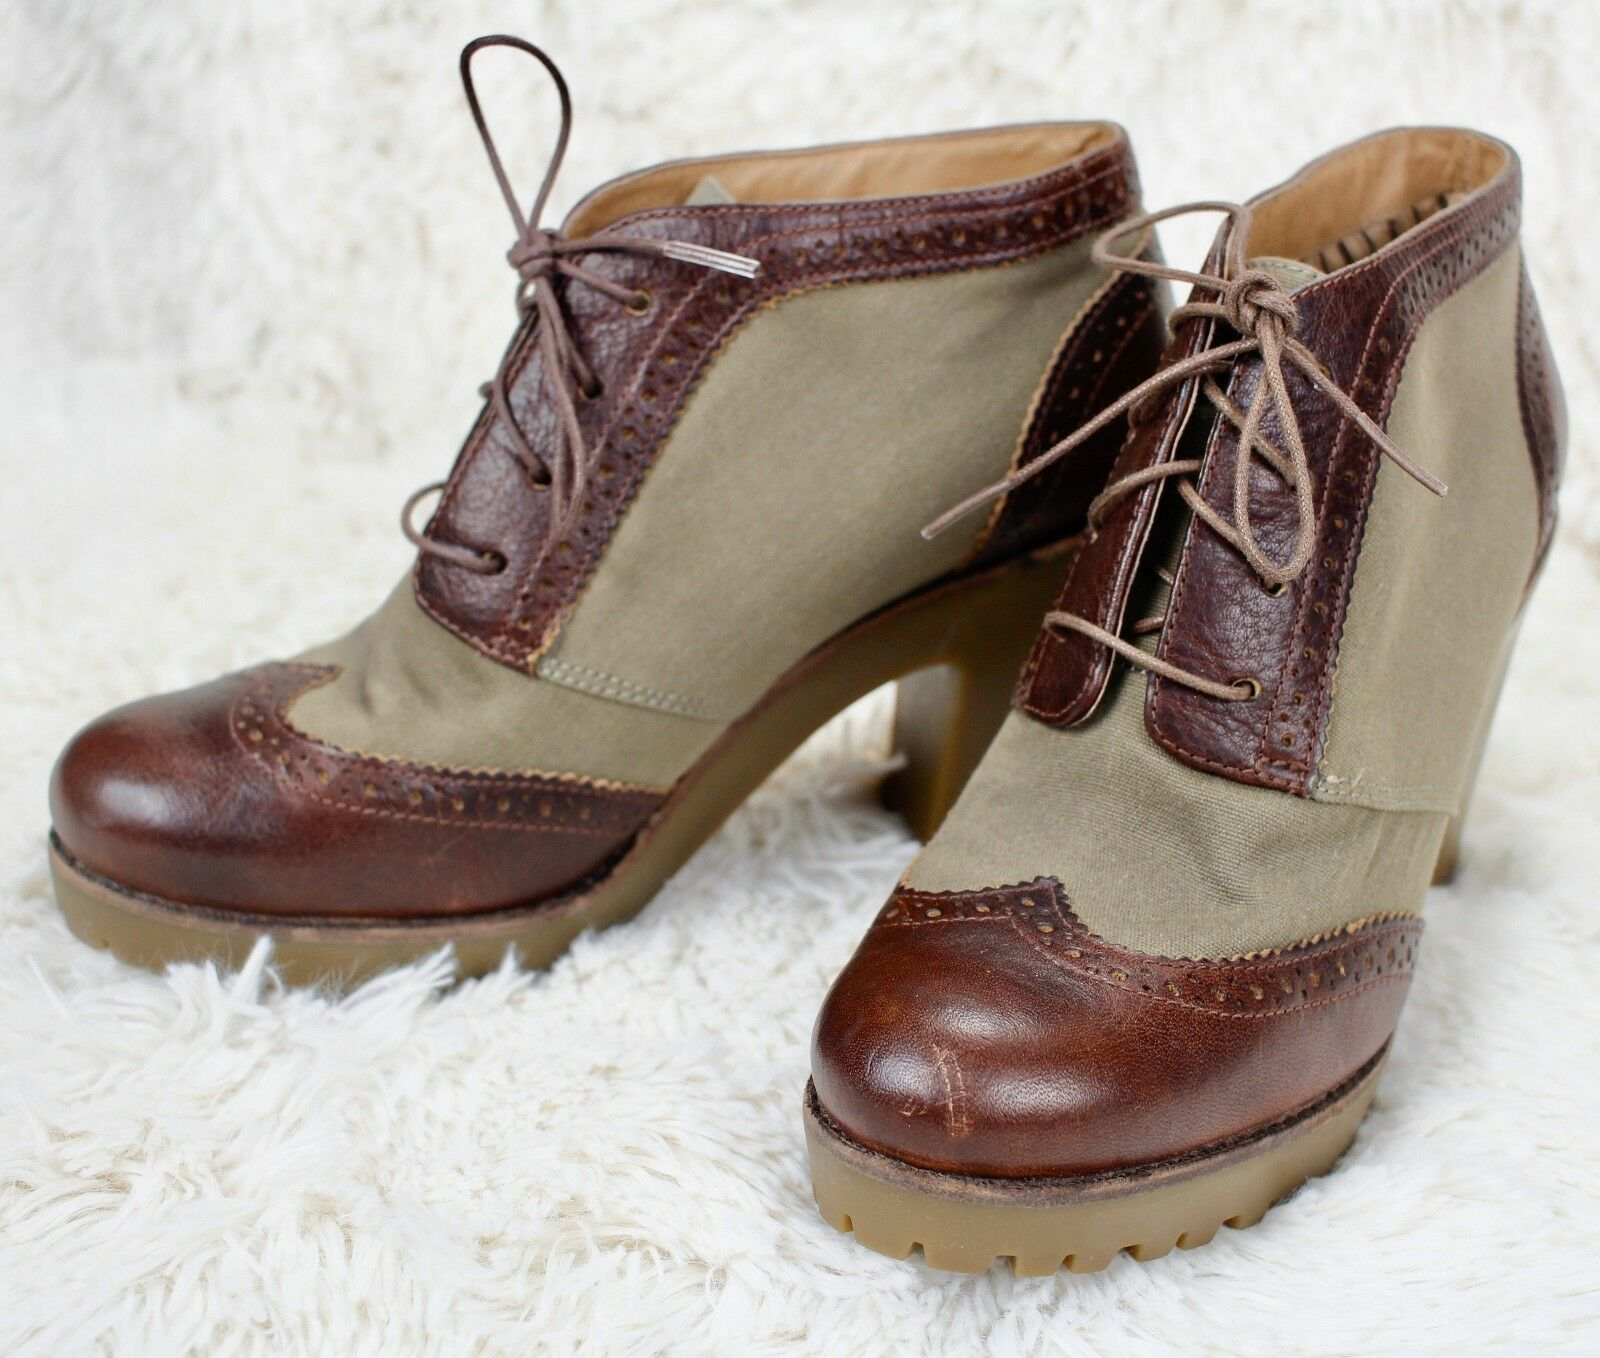 Sperry Top-Sider Emory Lace-up Heel Bootie Schuhes Damenschuhe 8.5 M Tan Olive 3